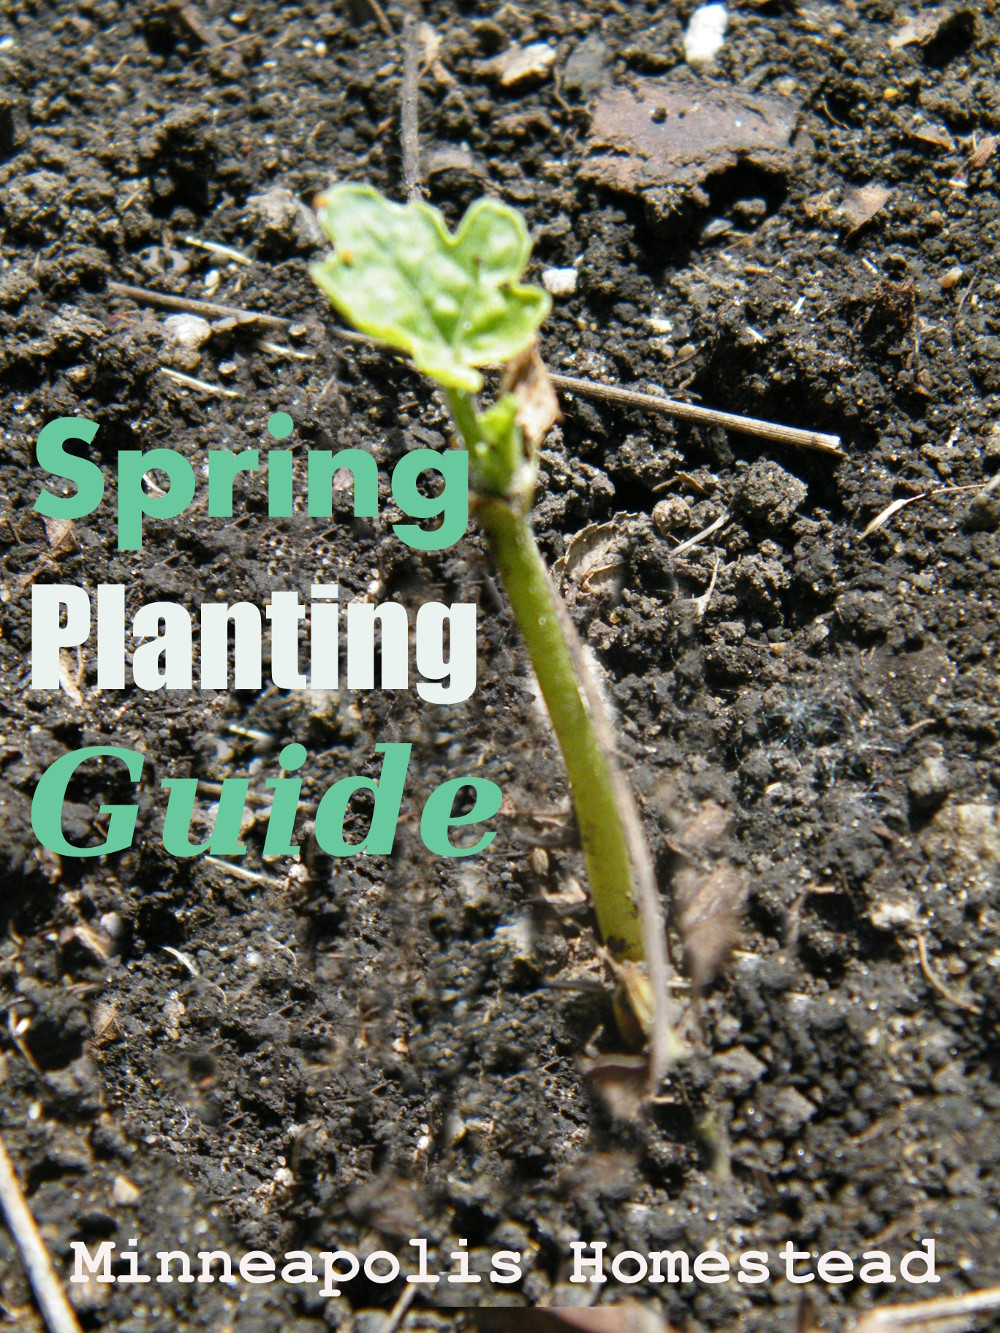 Mn spring planting schedule direct and indoor minneapolis homestead in minneapolis our average last frost is april 30 according to the farmers almanac and our average last known killing frost is may 10 according to mightylinksfo